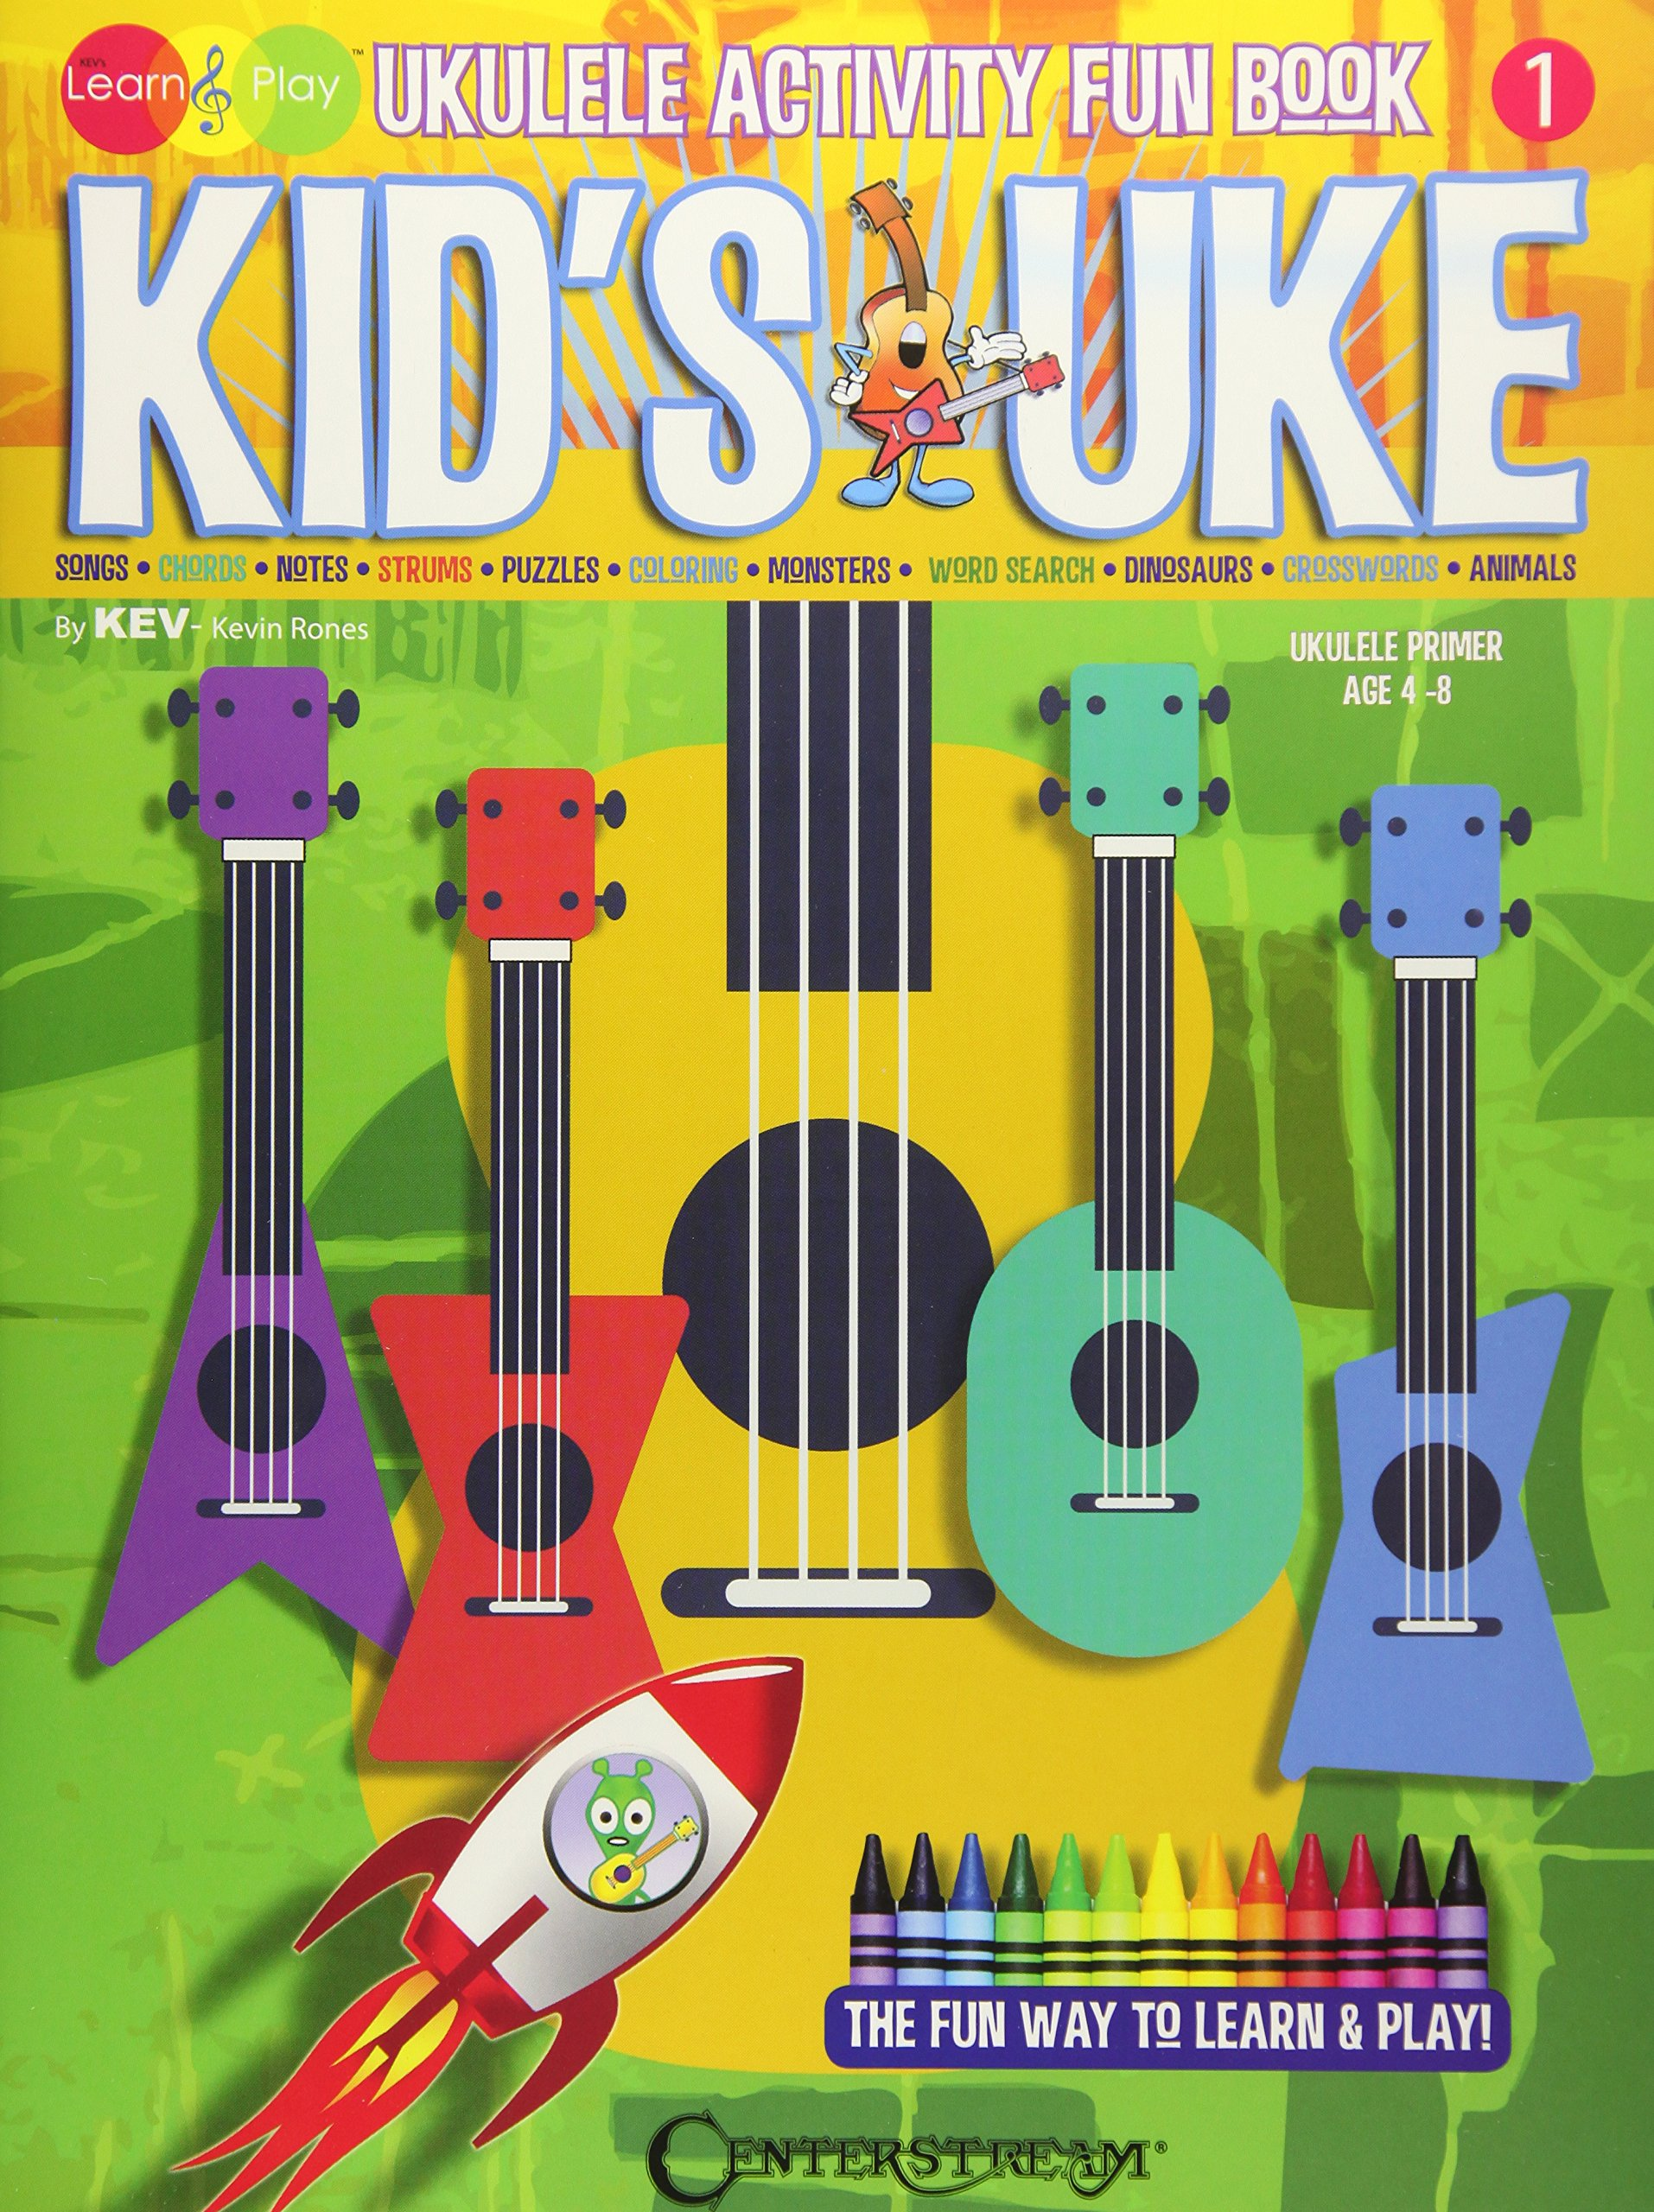 How to make good easy money fast as a kid uke